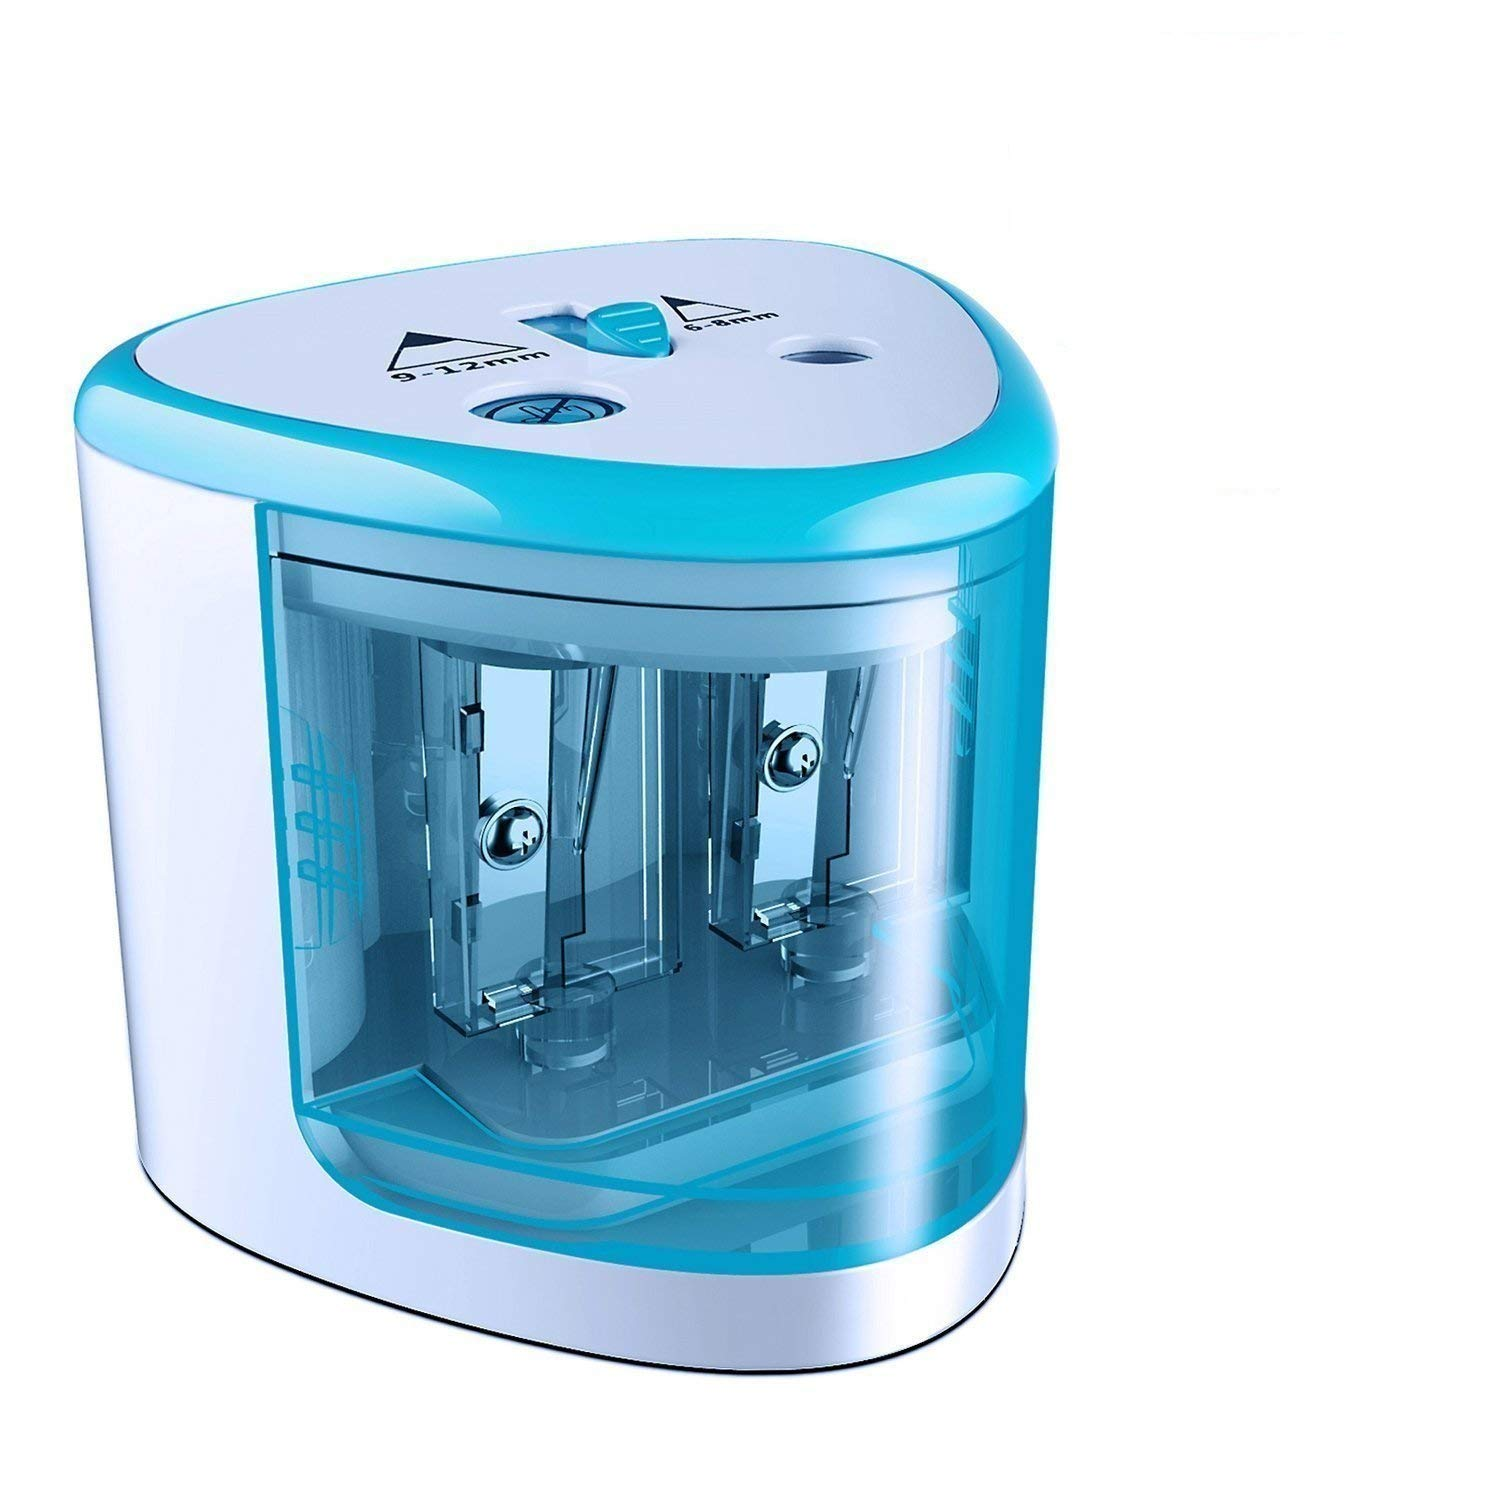 hlw Electric Pencil Sharpener,Heavy duty Blades Durable and Portable Pencil Sharpener with Automatic Sharpens All Pencils for School Kids Children,Blue Pencil Sharpener Electric